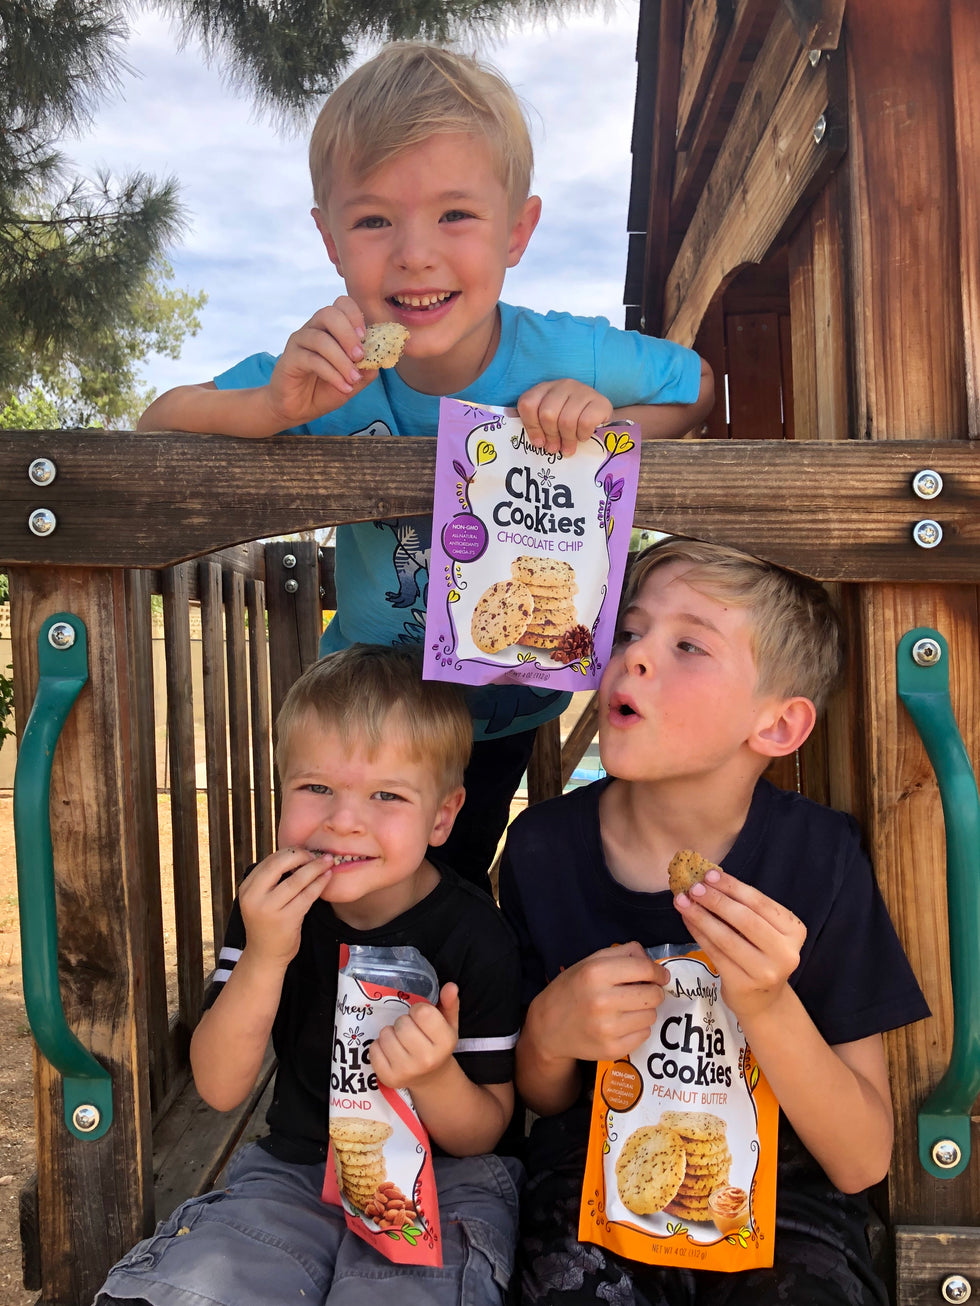 Audrey's Chia Cookies Keep Kids Fueled